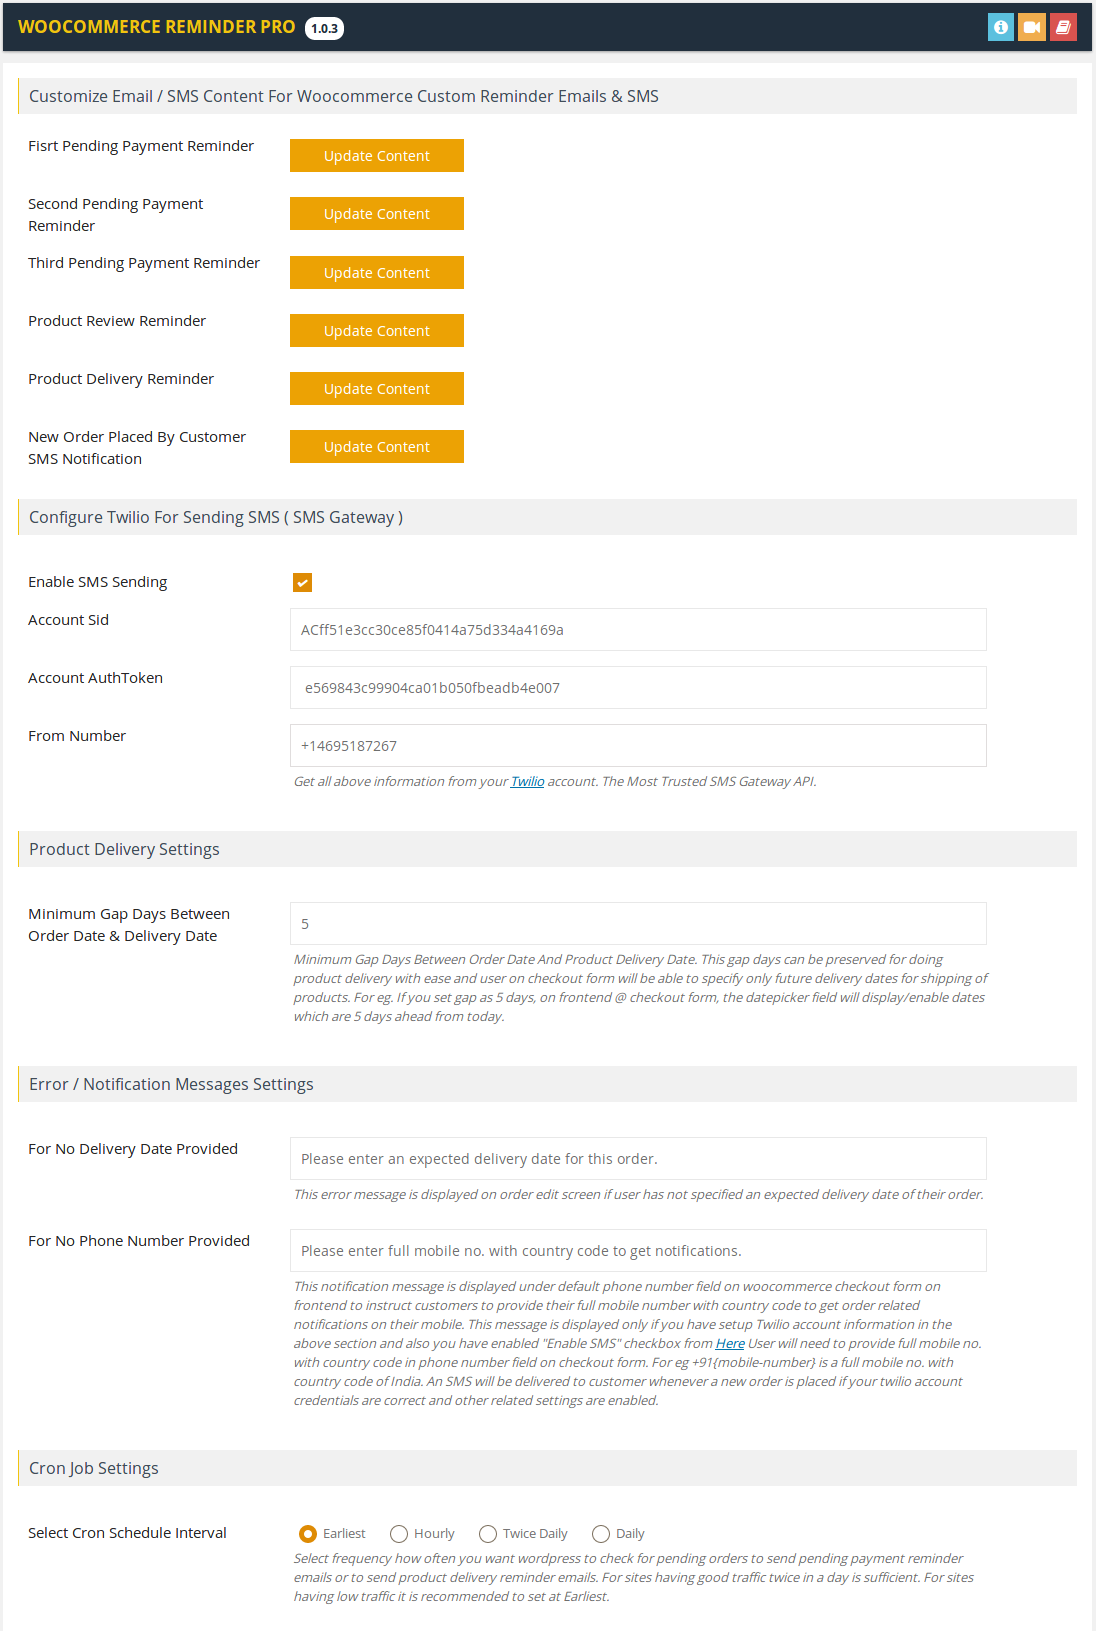 Send Important Reminder Emails in WooCommerce